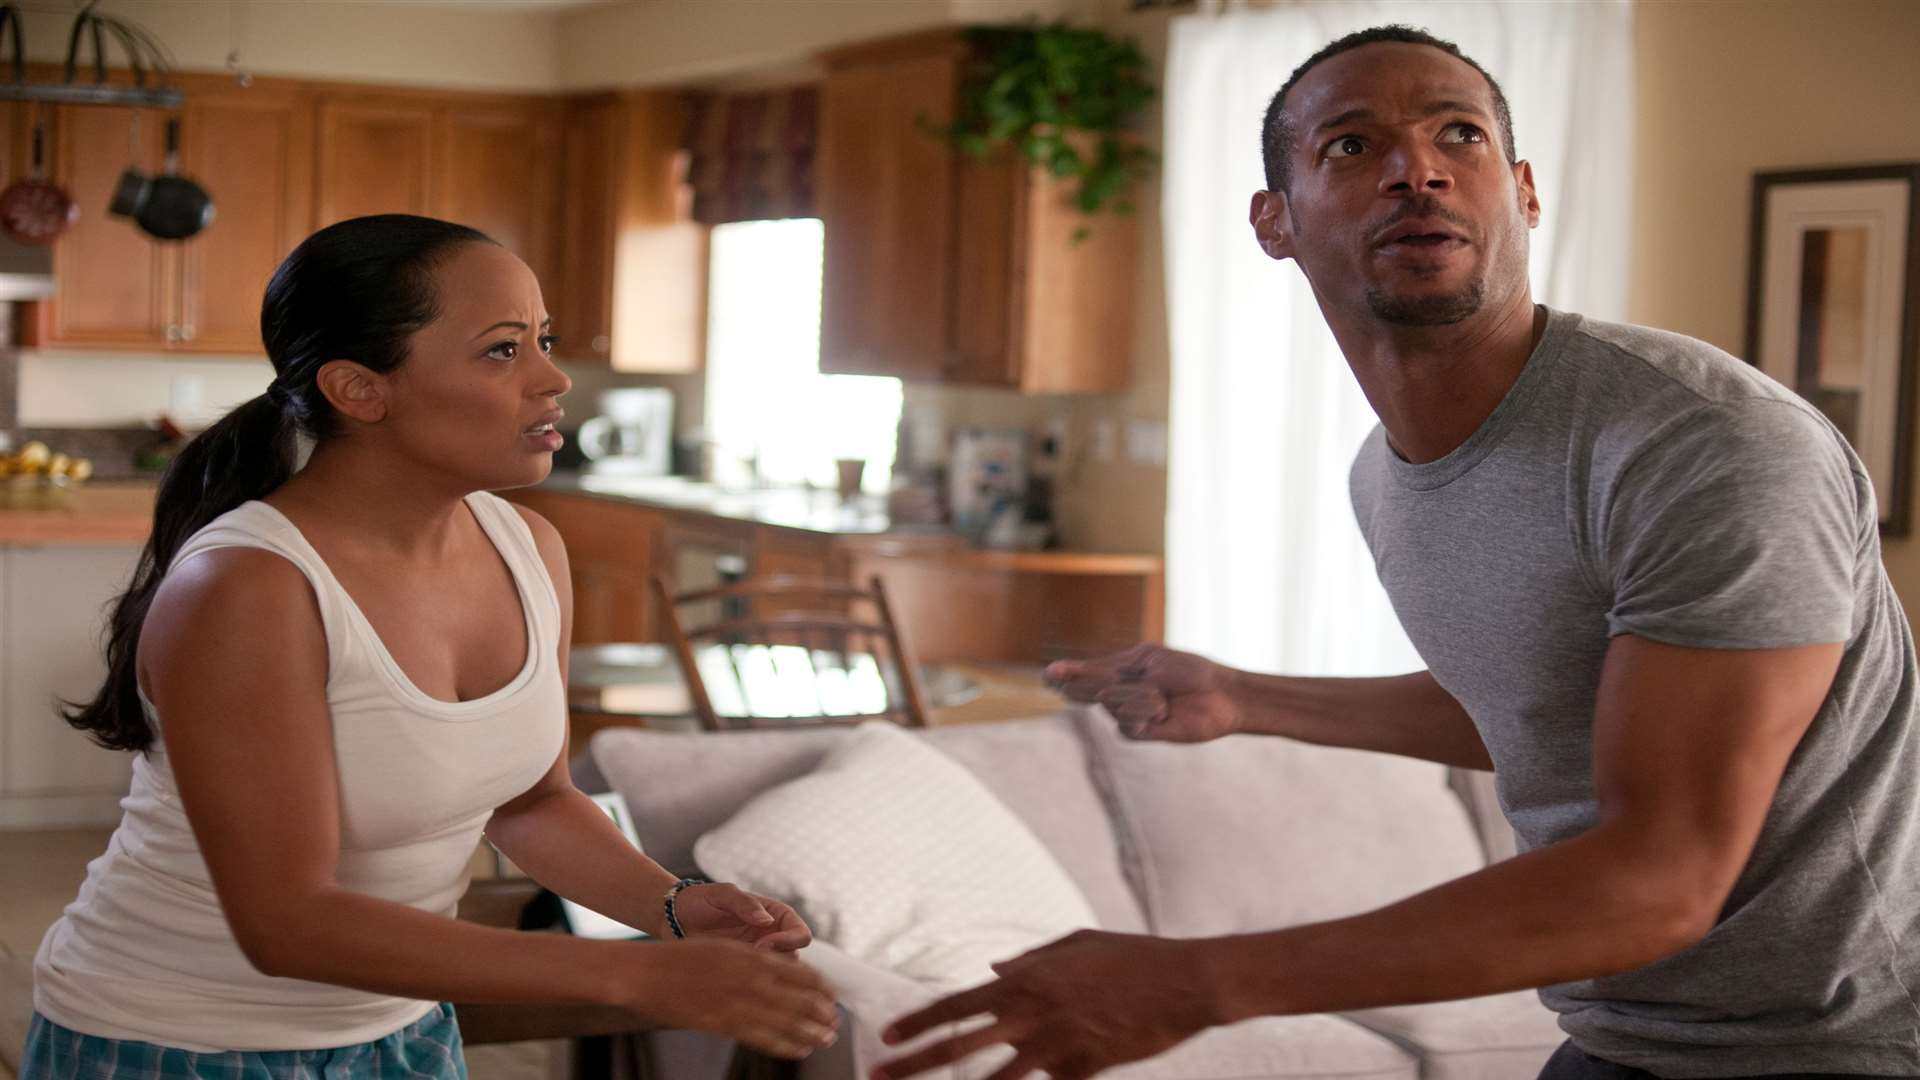 Marlon Wayans as Malcolm and Essence Atkins as Kisha in A Haunted House. Picture: PA Photo/Handout.